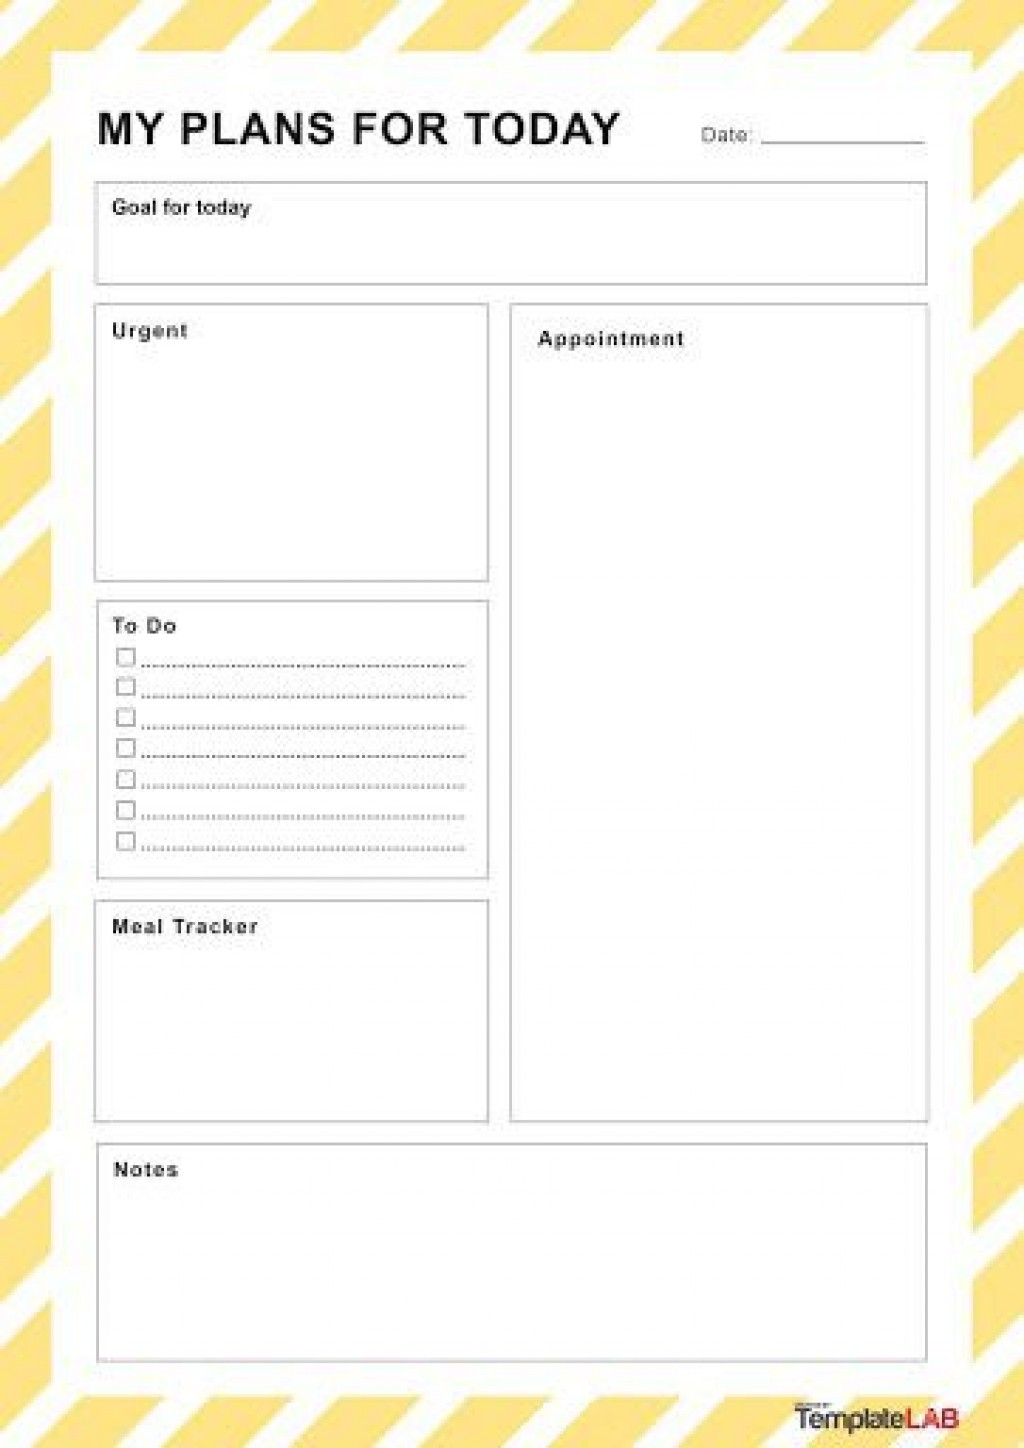 002 Dreaded Daily Schedule Template Printable Concept Large